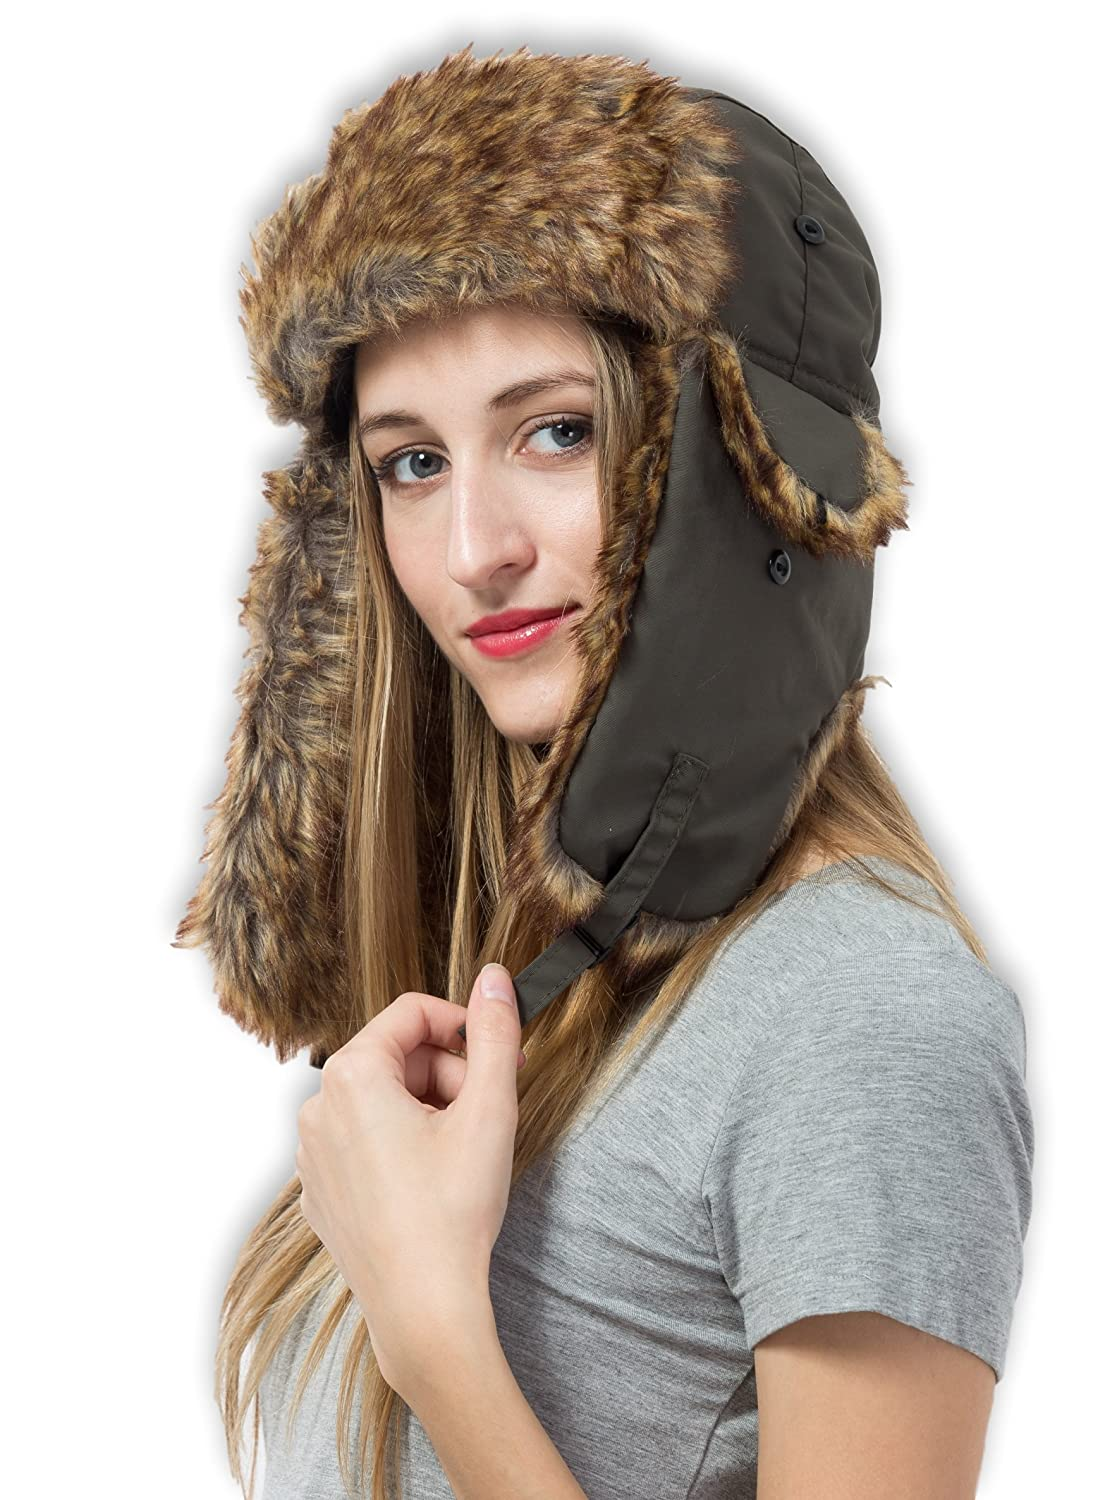 Tough Headwear Trapper Hat with Faux Fur   Ear Flaps - Ushanka Aviator  Russian Hat for Serious Expeditions   Serious Style. Waterproof 06ff6ab3a1b